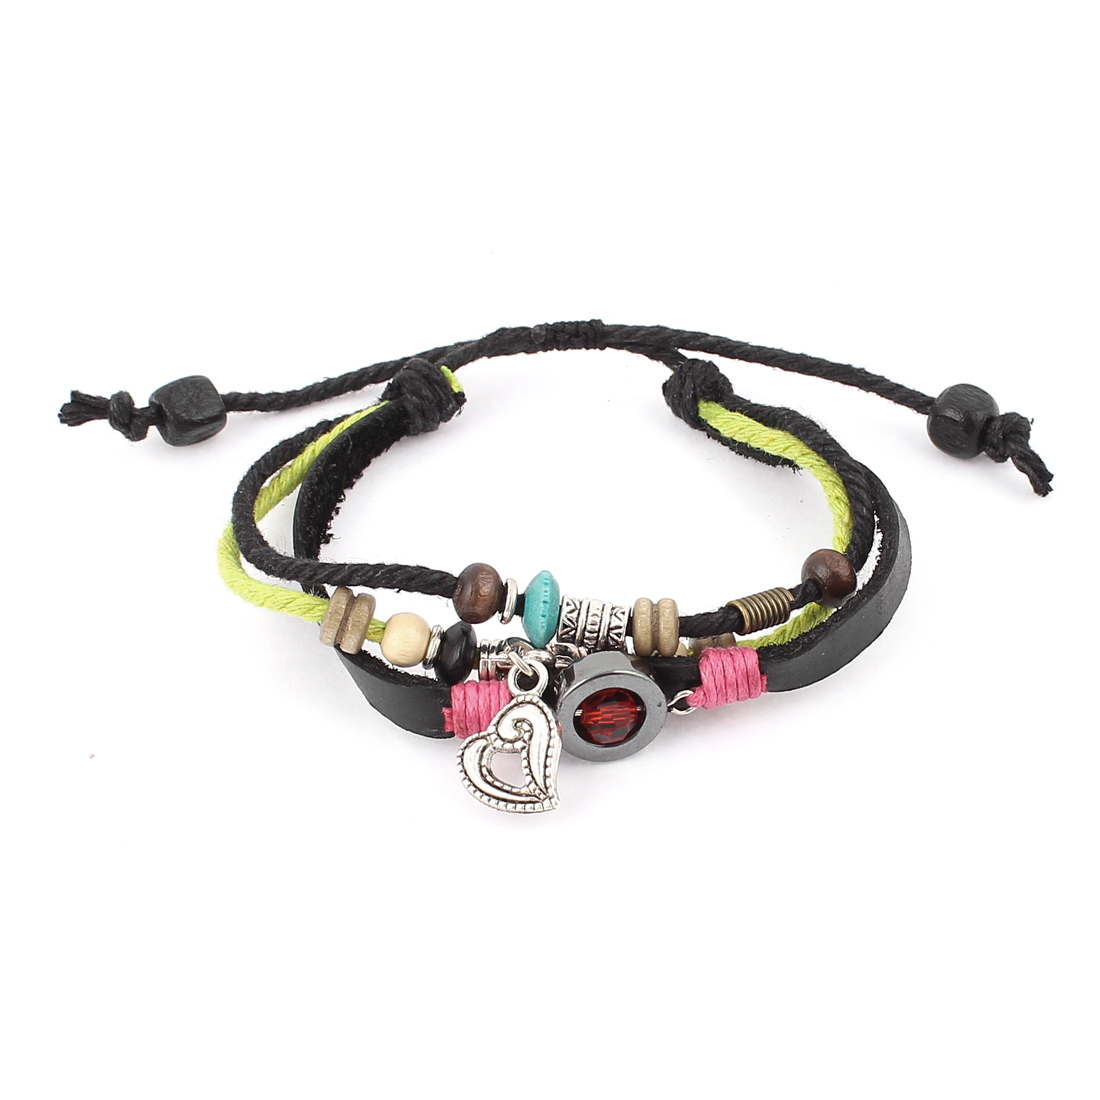 Punk Rocker Heart Pendant Black Faux Leather Band Wax Cord String Charm Wrap Wristband Bracelet Bangle